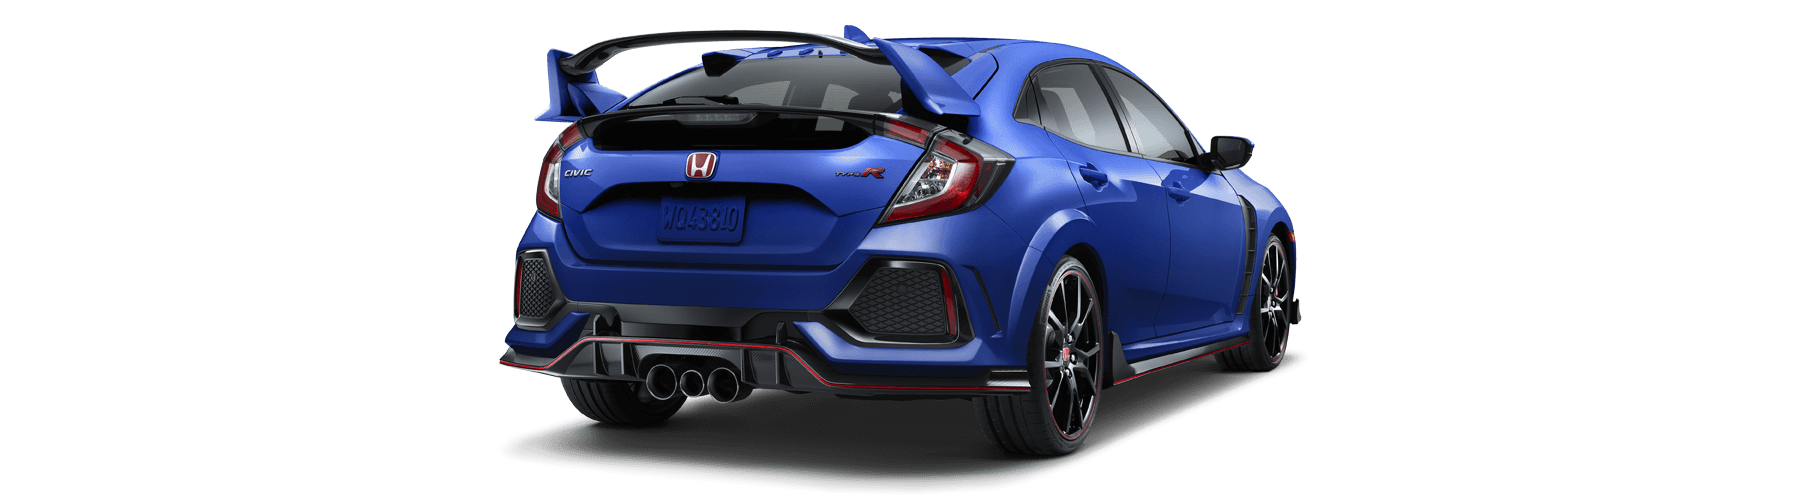 2018 Honda Civic Type R Rear Angle